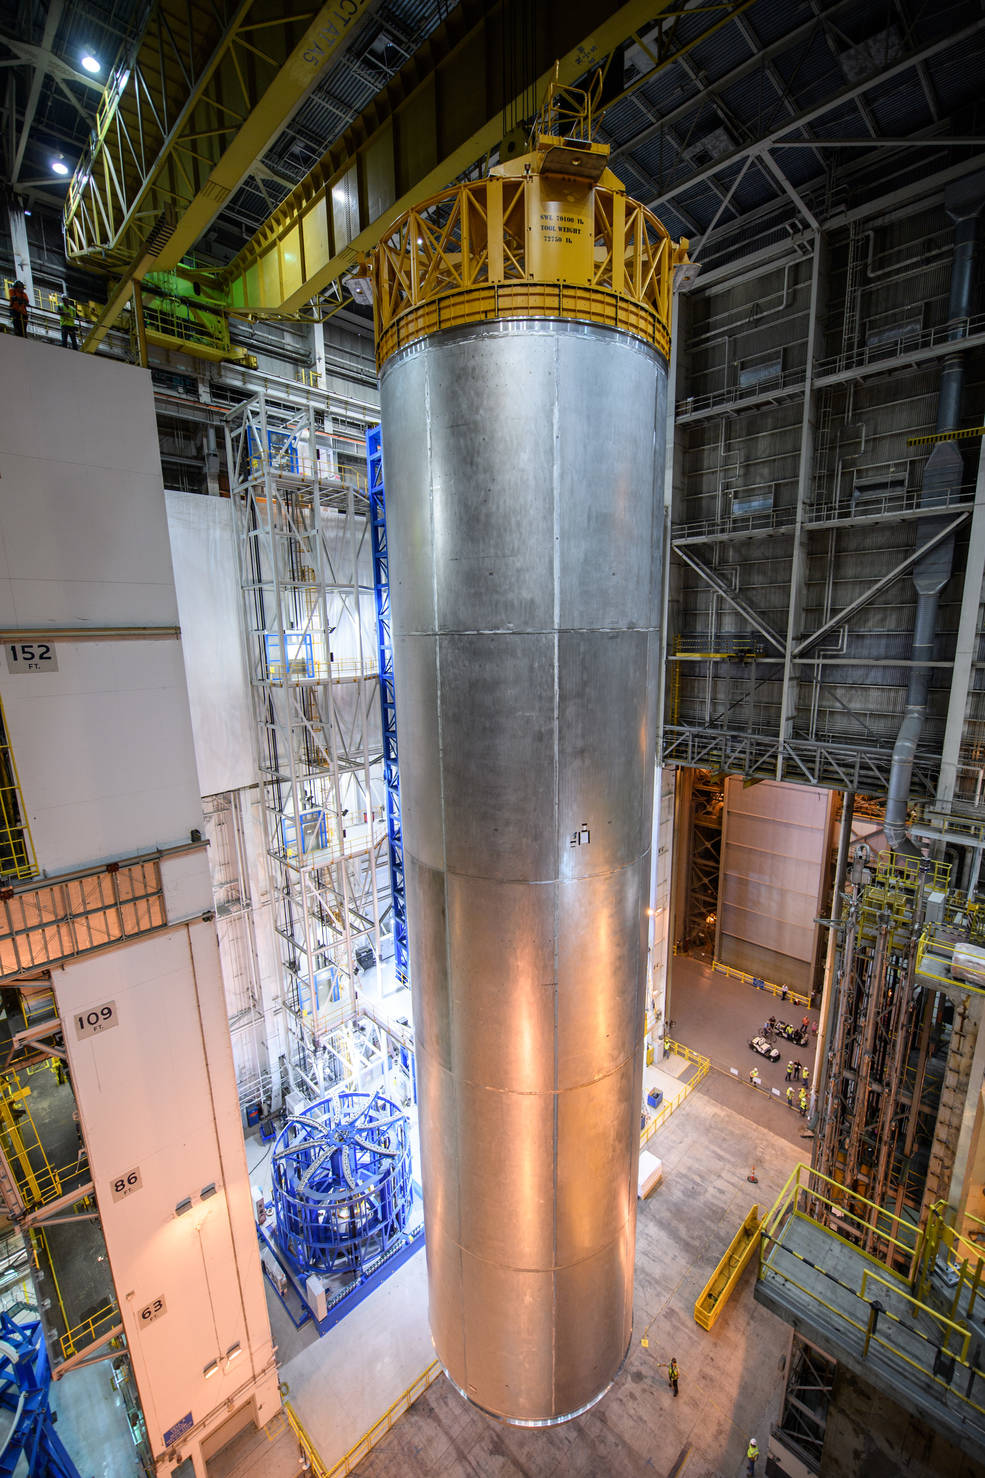 NASA Completes Welding on SLS Fuel Tank Test Article